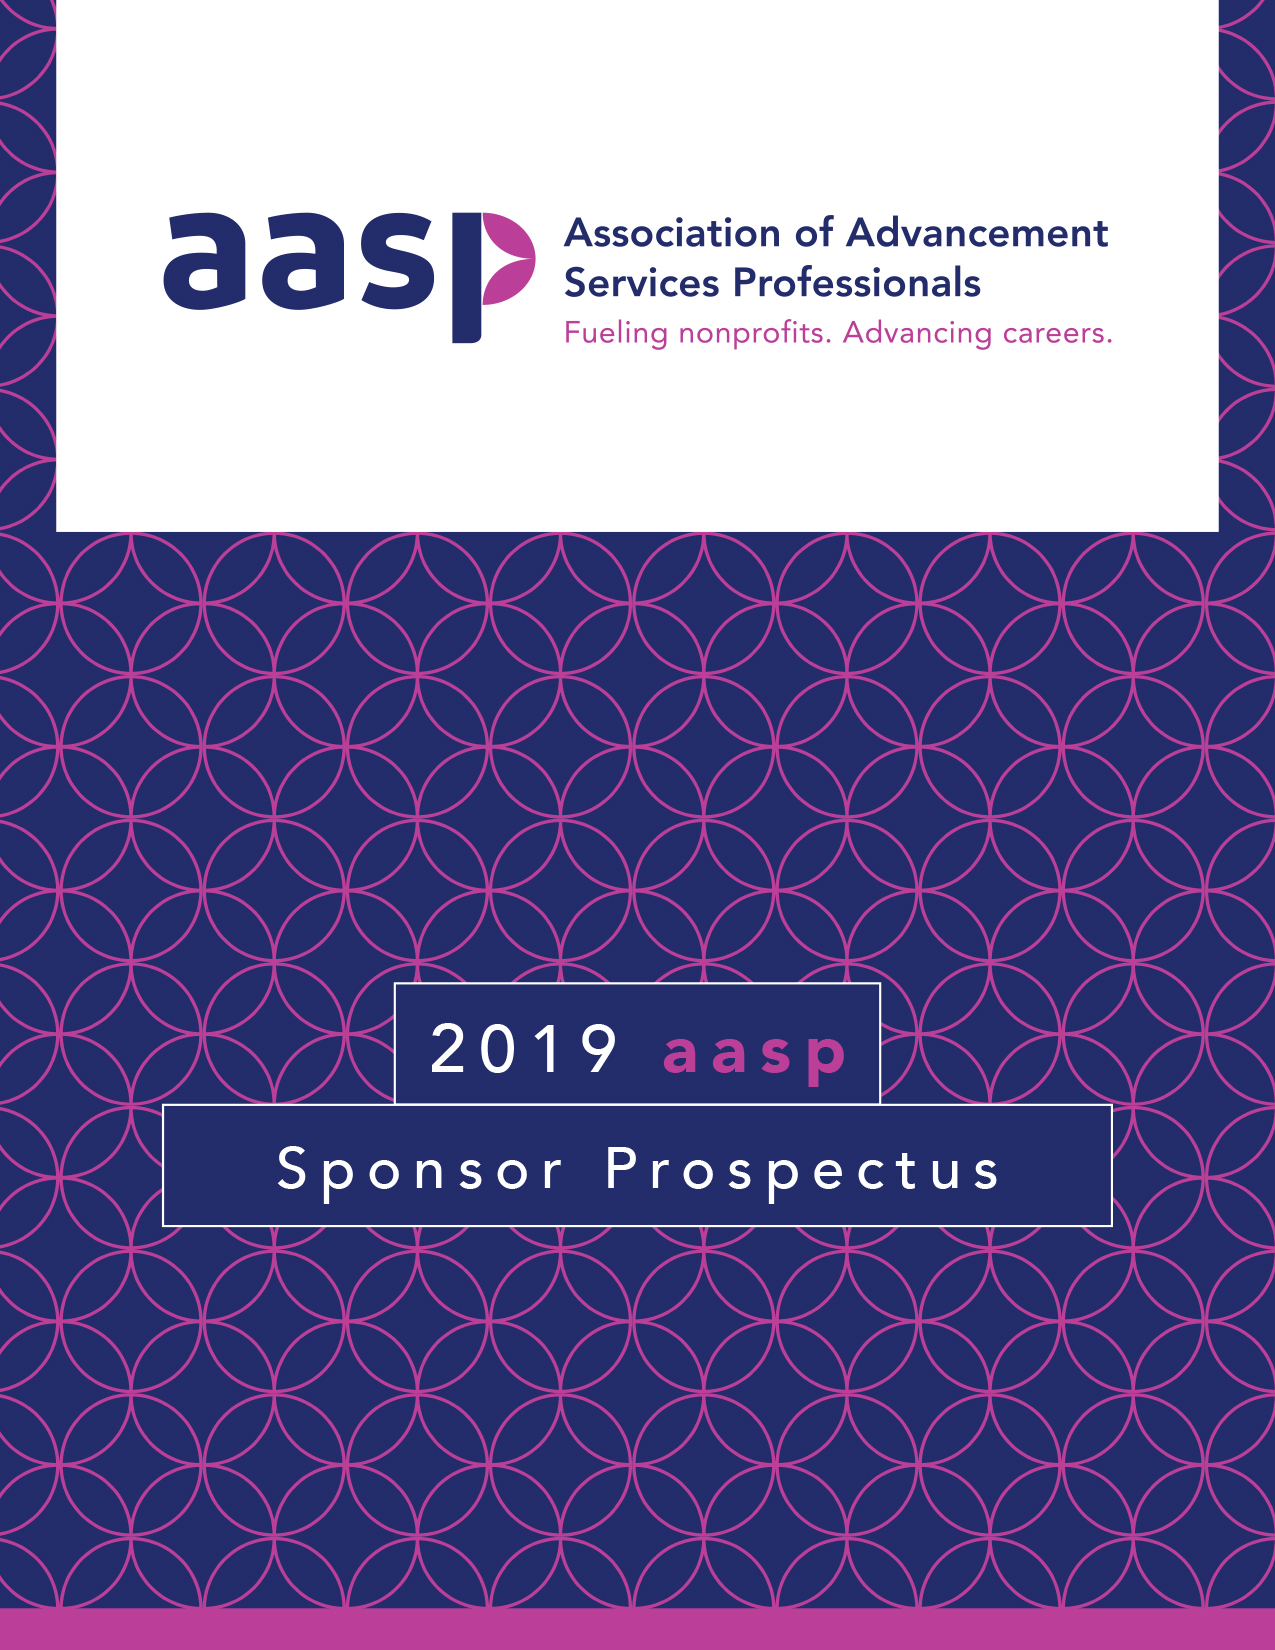 aasp 2019 Prospectus cover